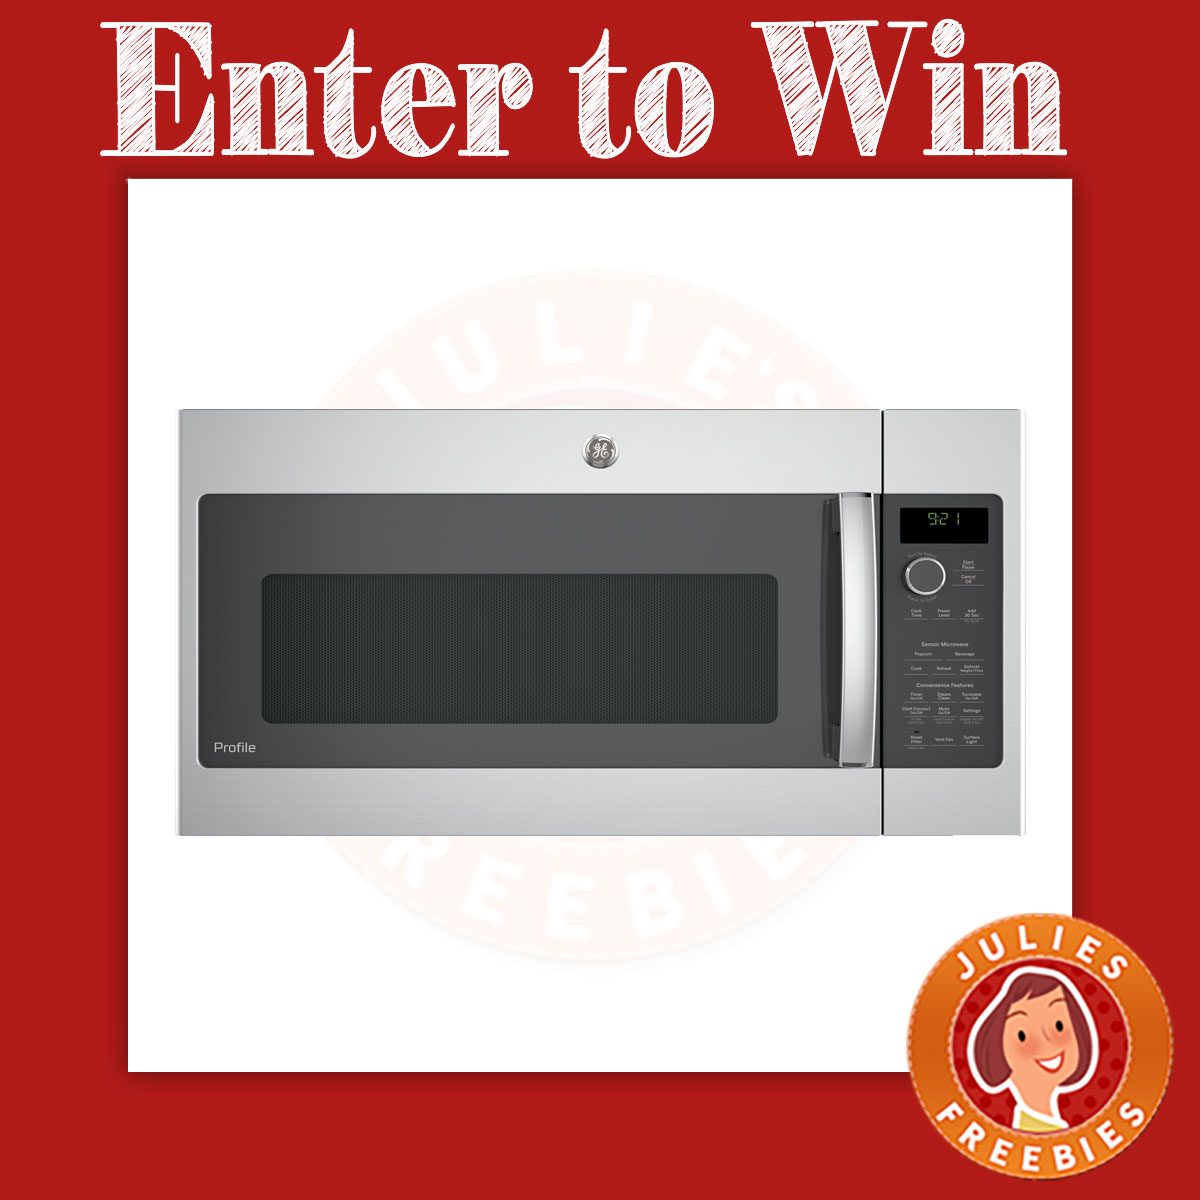 Ge appliances now you 39 re cooking sweepstakes julie 39 s for Enter now to win